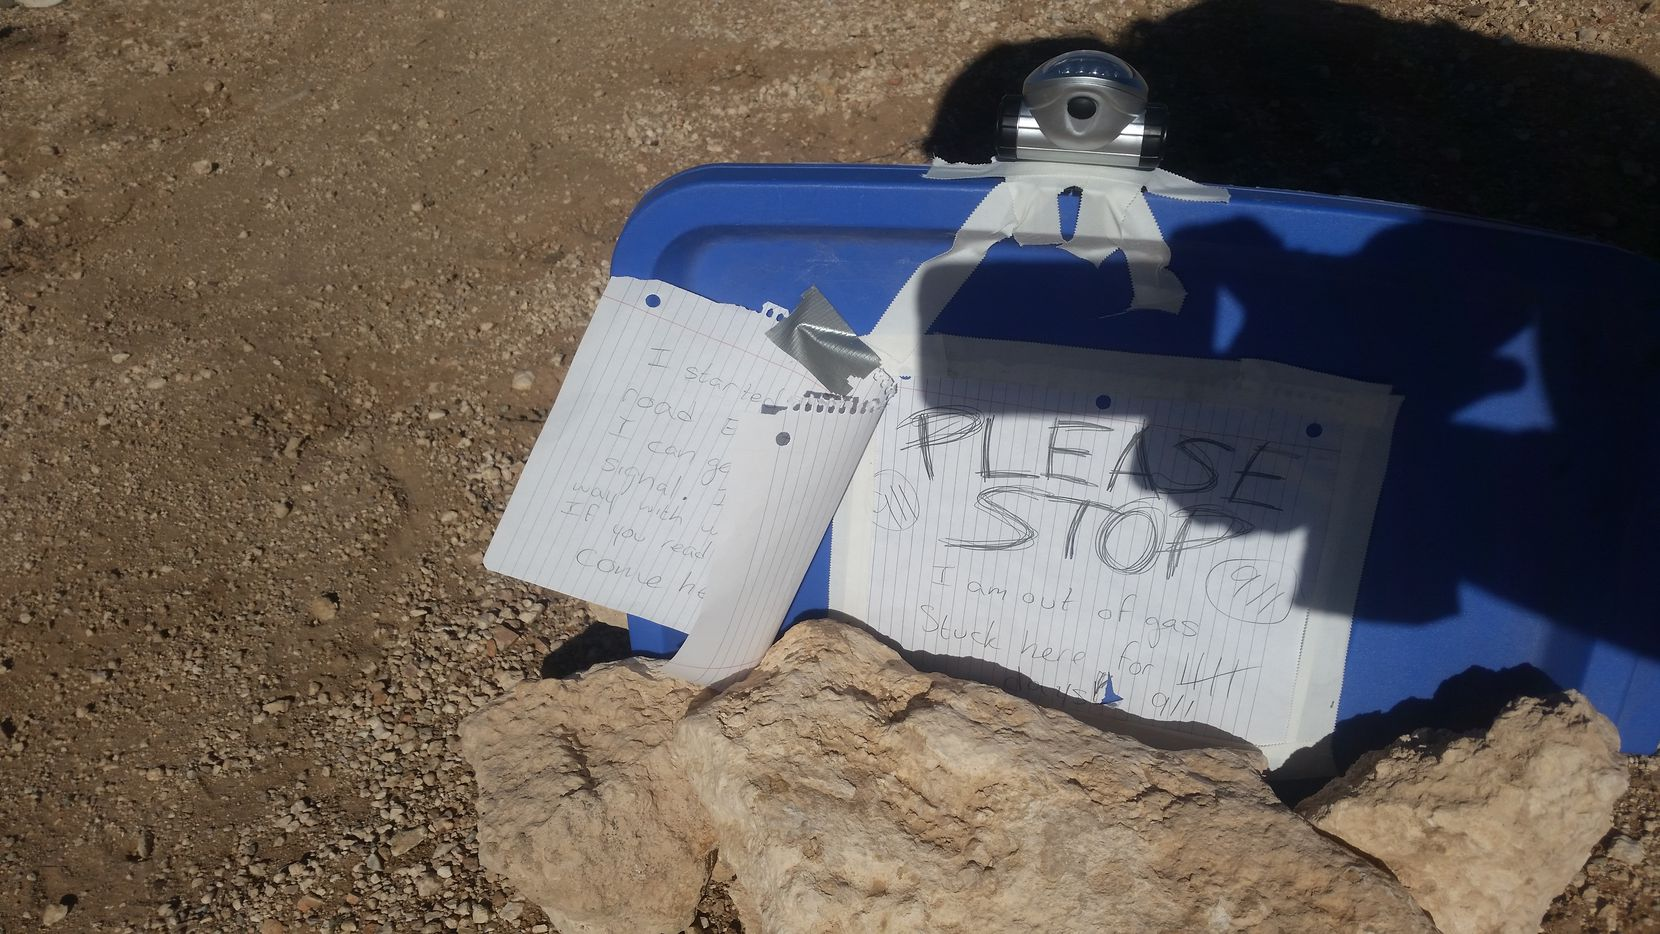 VanHecke left rescuers a note explaining where she was. (Arizona Department of Public Safety)